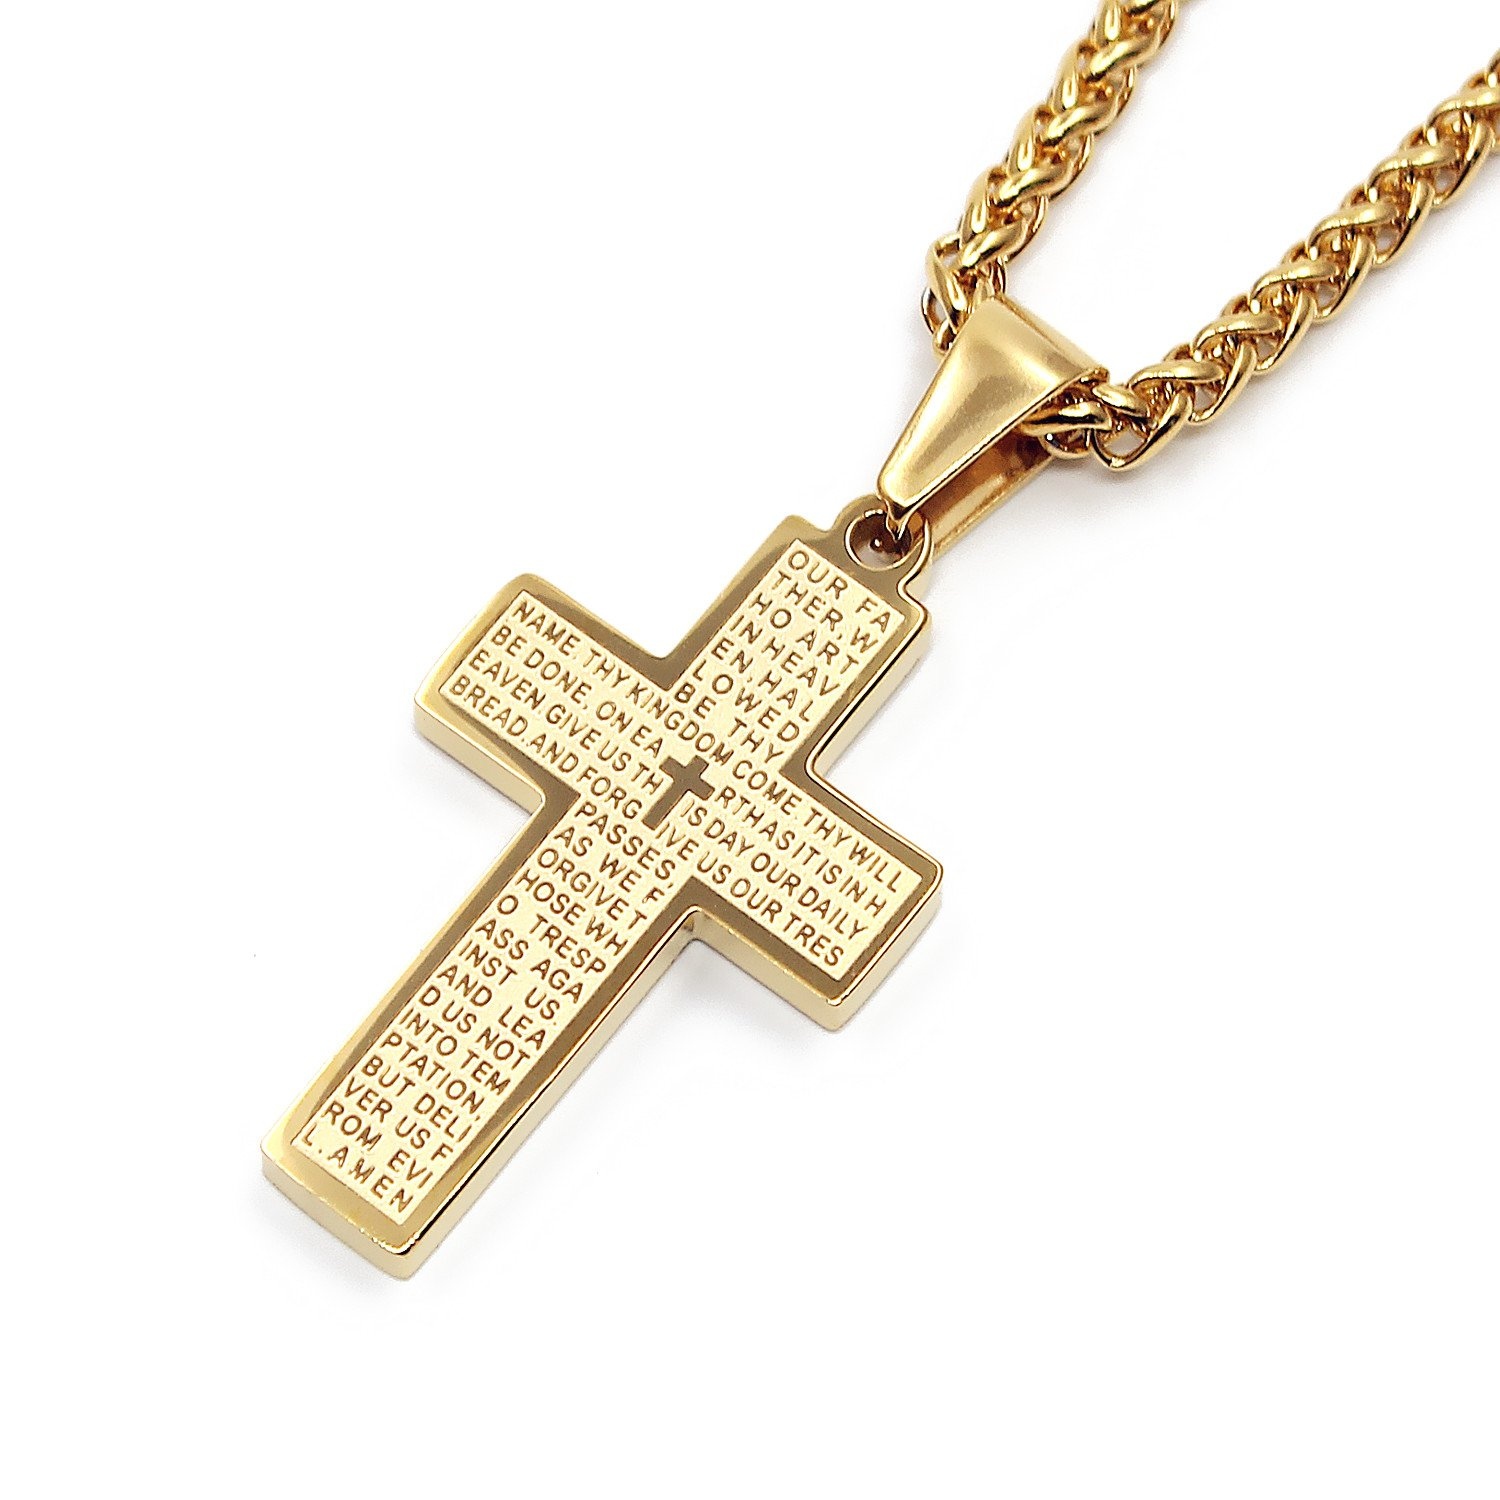 Mens Gold & Silver Stainless Steel Lord's Prayer Cross Pendant Necklace  Religious Jewelry 22 inches Chain